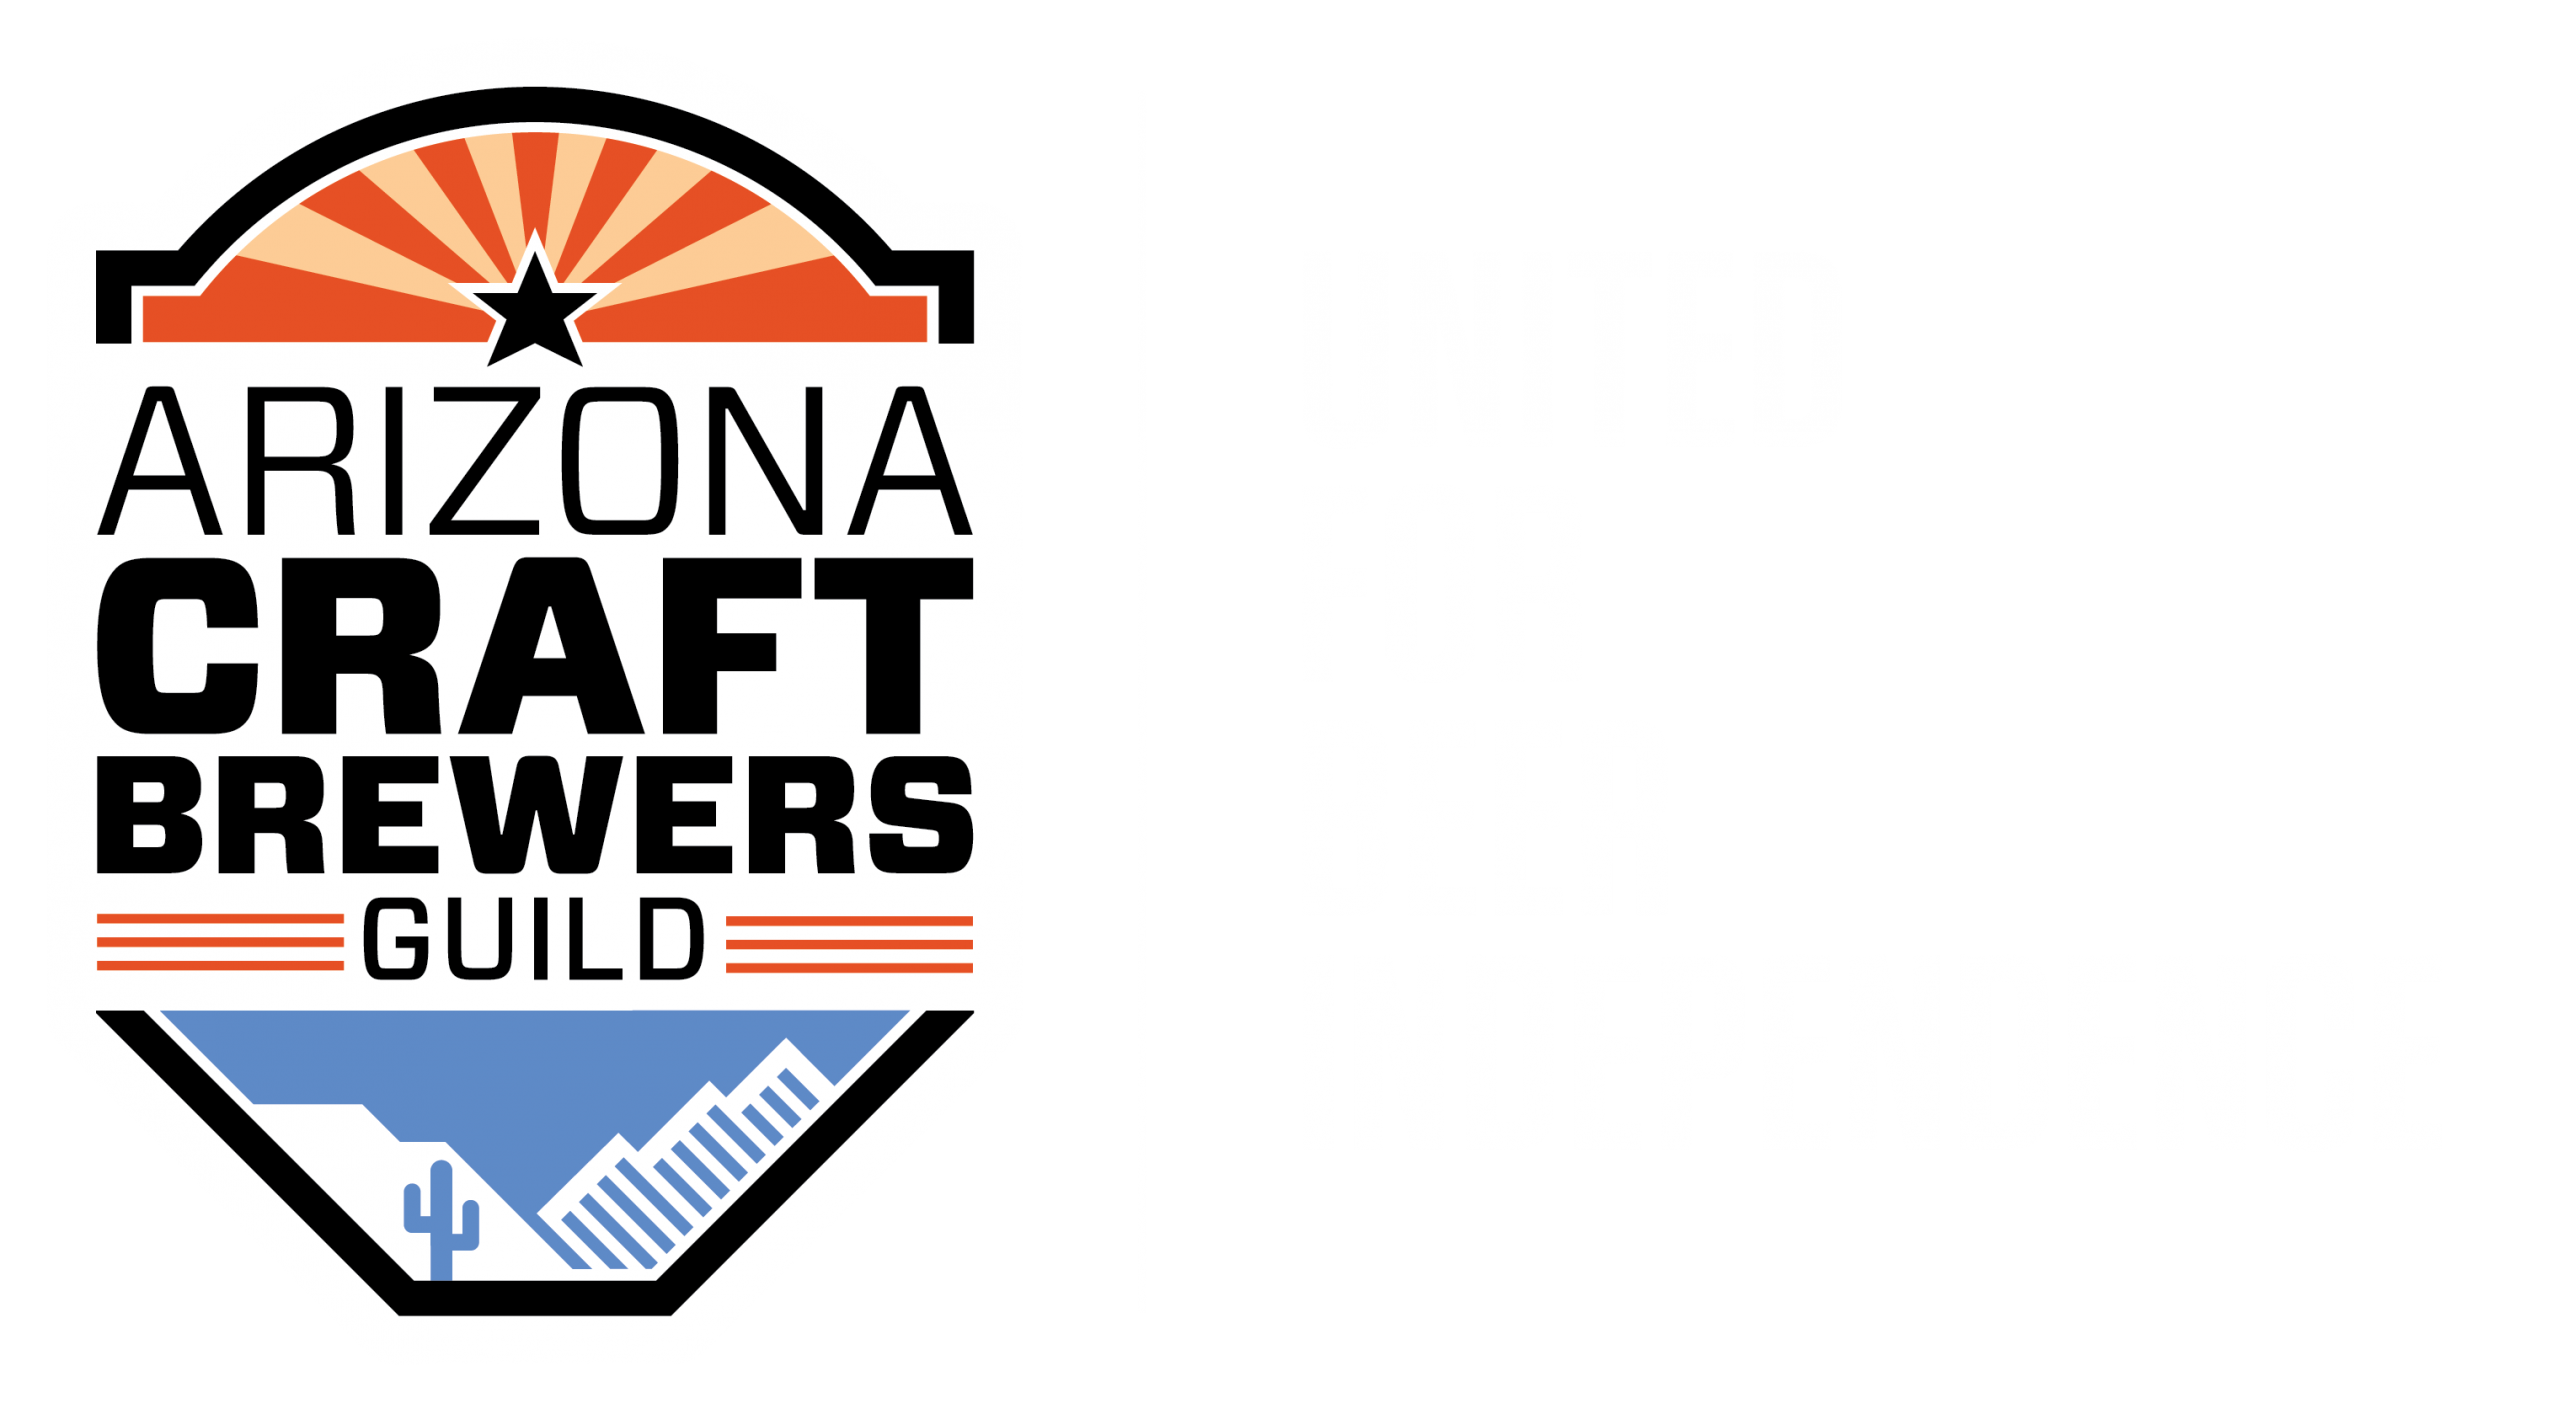 Andrew Bauman | Arizona Craft Brewers Guild